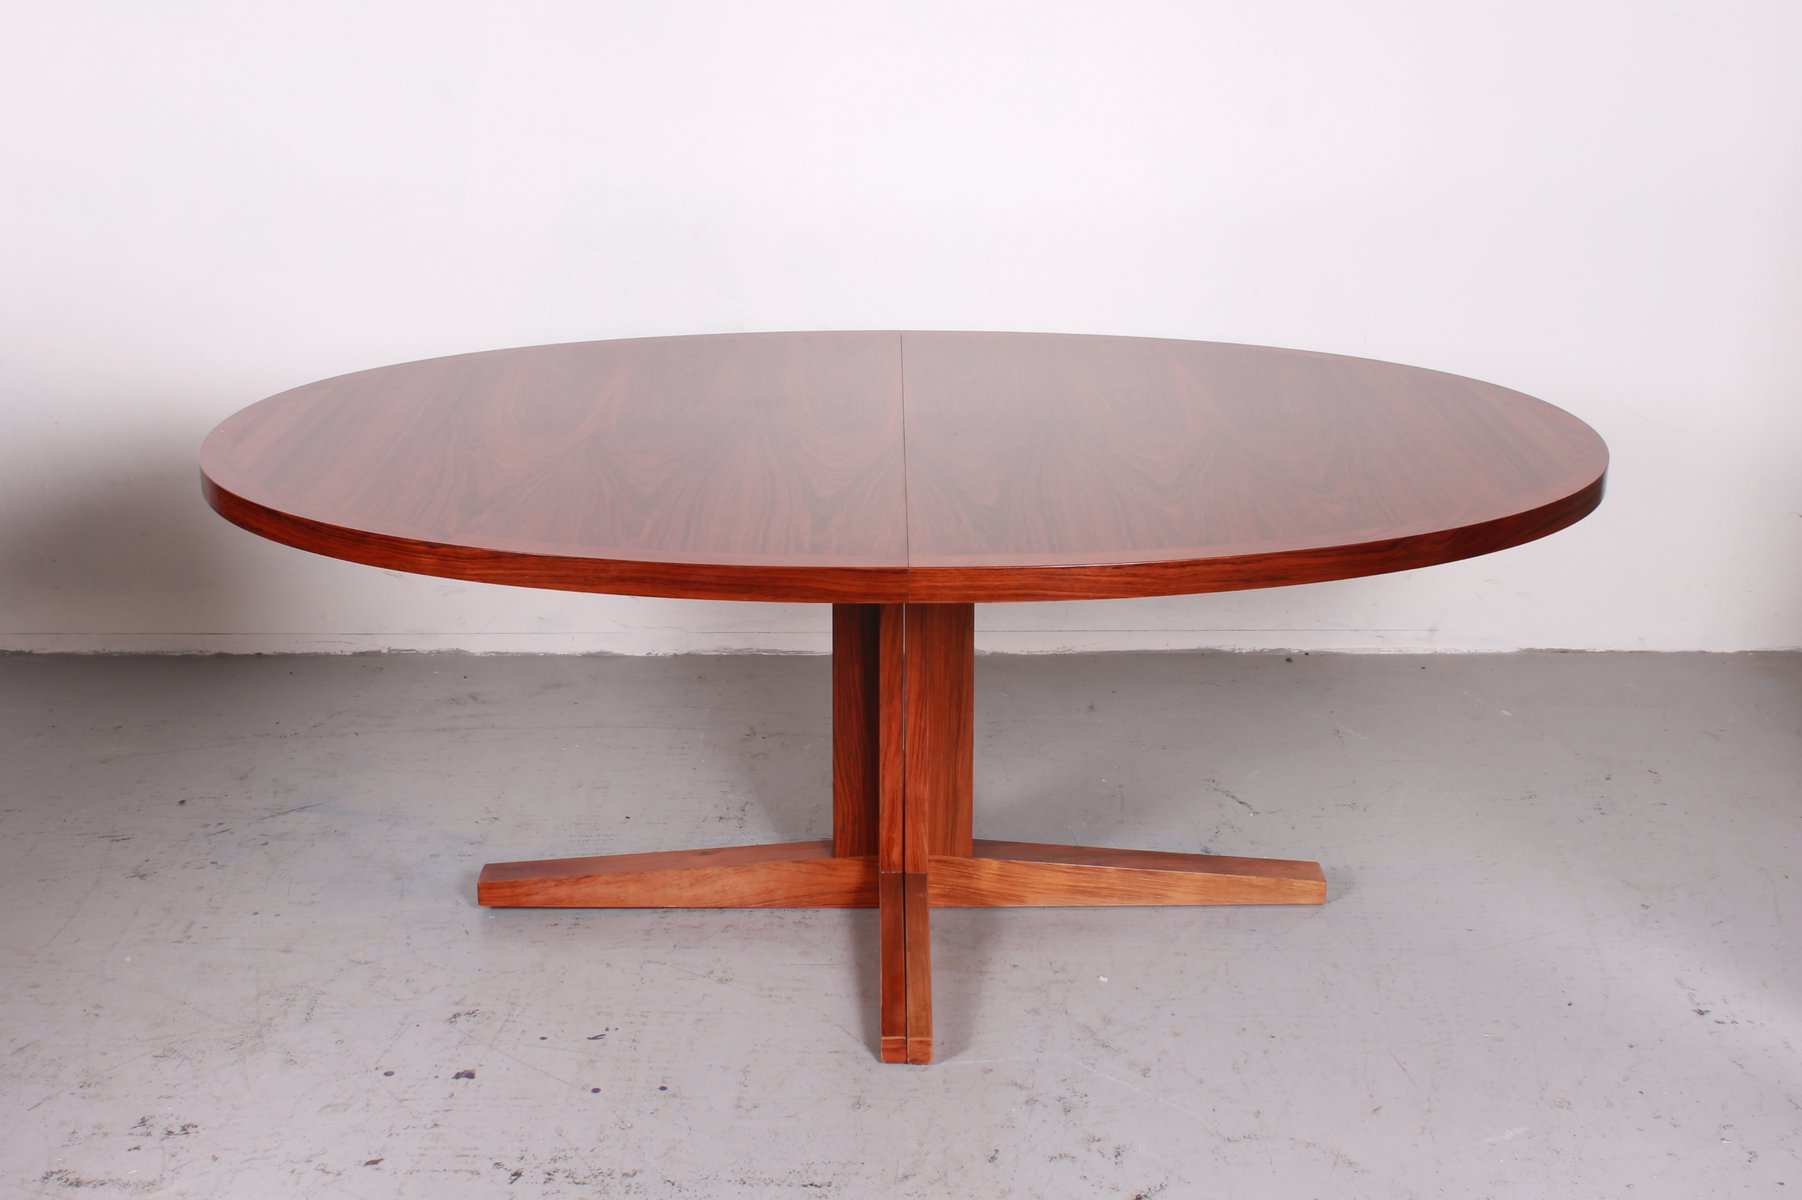 Vintage extensible dining table from dyrlund for sale at for Table 90 extensible